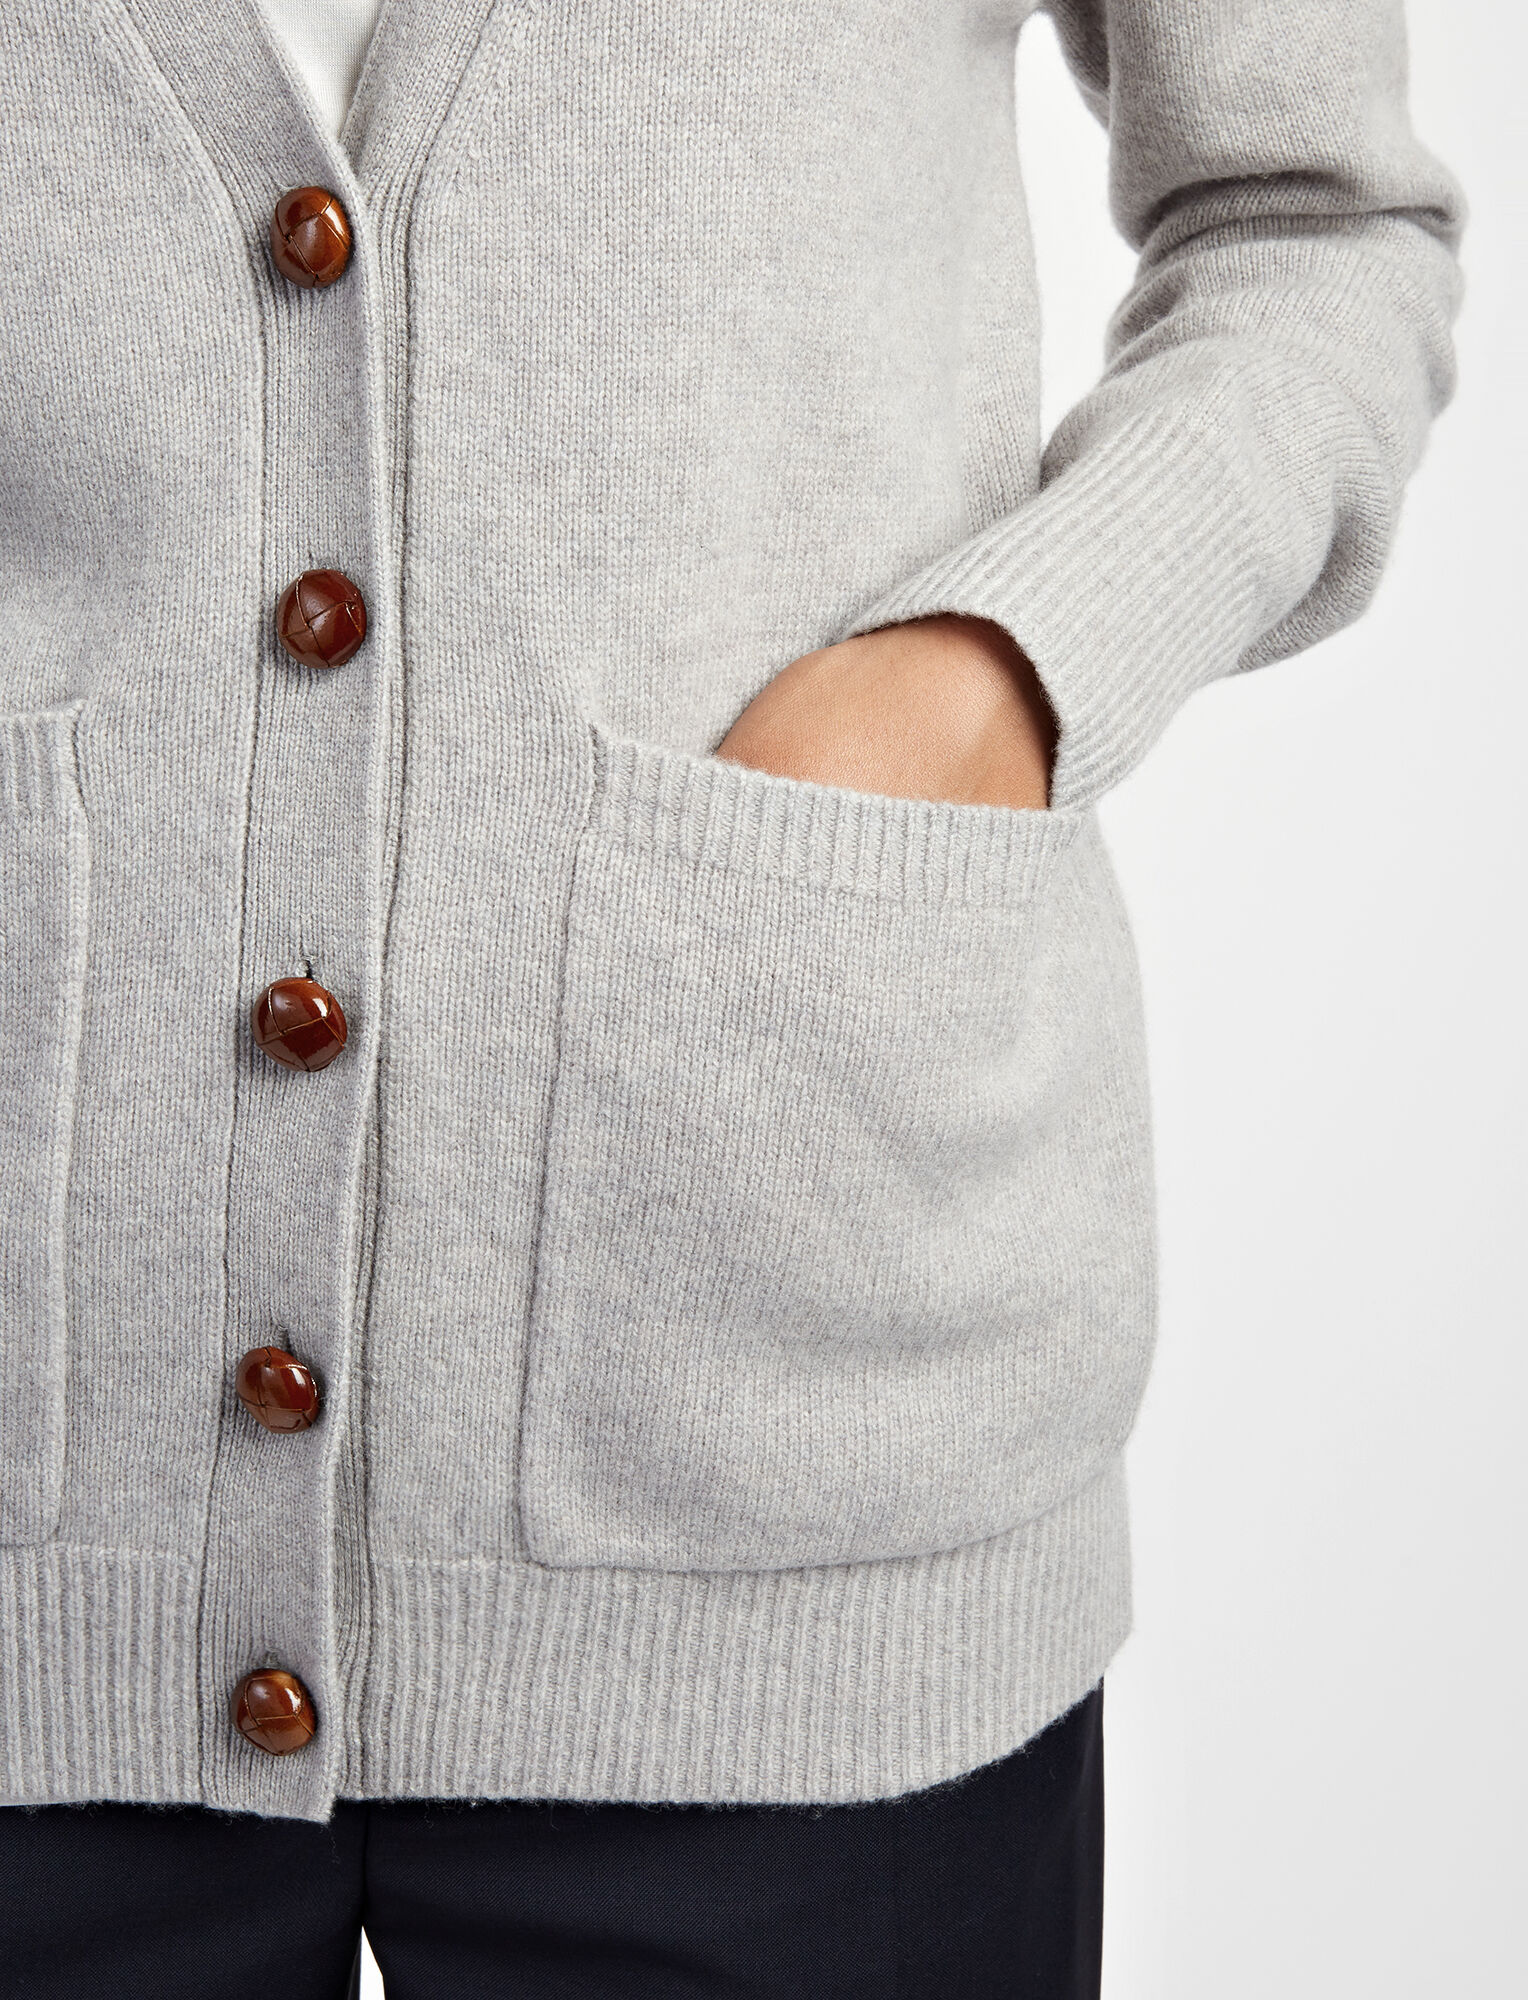 Soft Wool Boyfriend Cardigan in Grey | JOSEPH